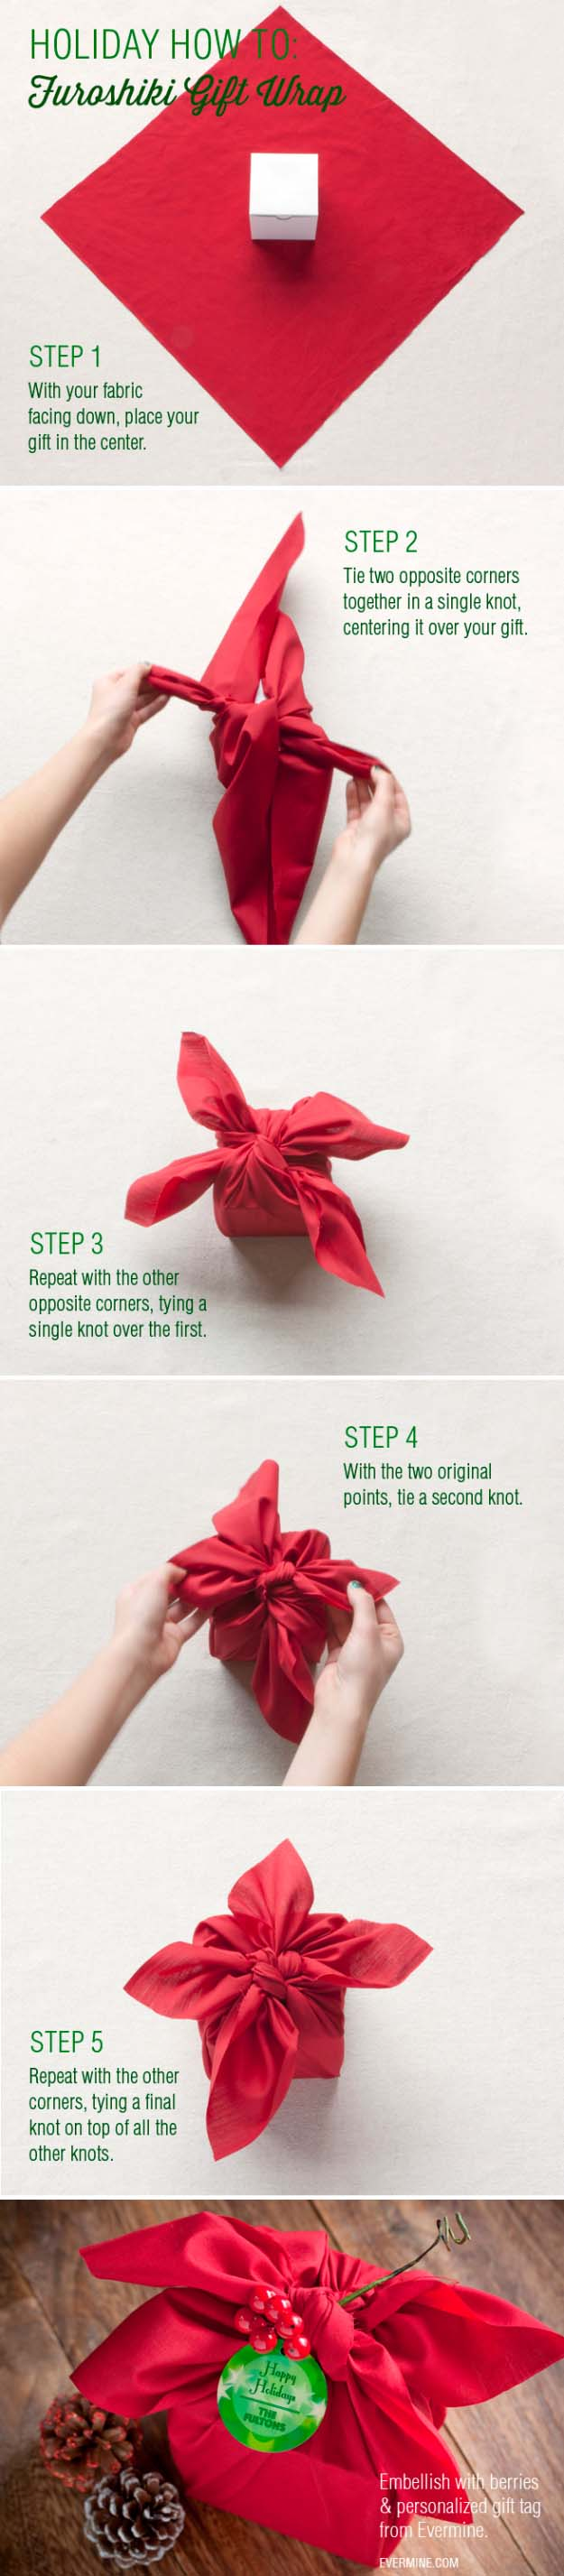 DIY Gift Wrapping Ideas - How To Wrap A Present - Tutorials, Cool Ideas and Instructions | Cute Gift Wrap Ideas for Christmas, Birthdays and Holidays | Tips for Bows and Creative Wrapping Papers |  Furoshiki Gift Wrap  |  http://diyjoy.com/how-to-wrap-a-gift-wrapping-ideas